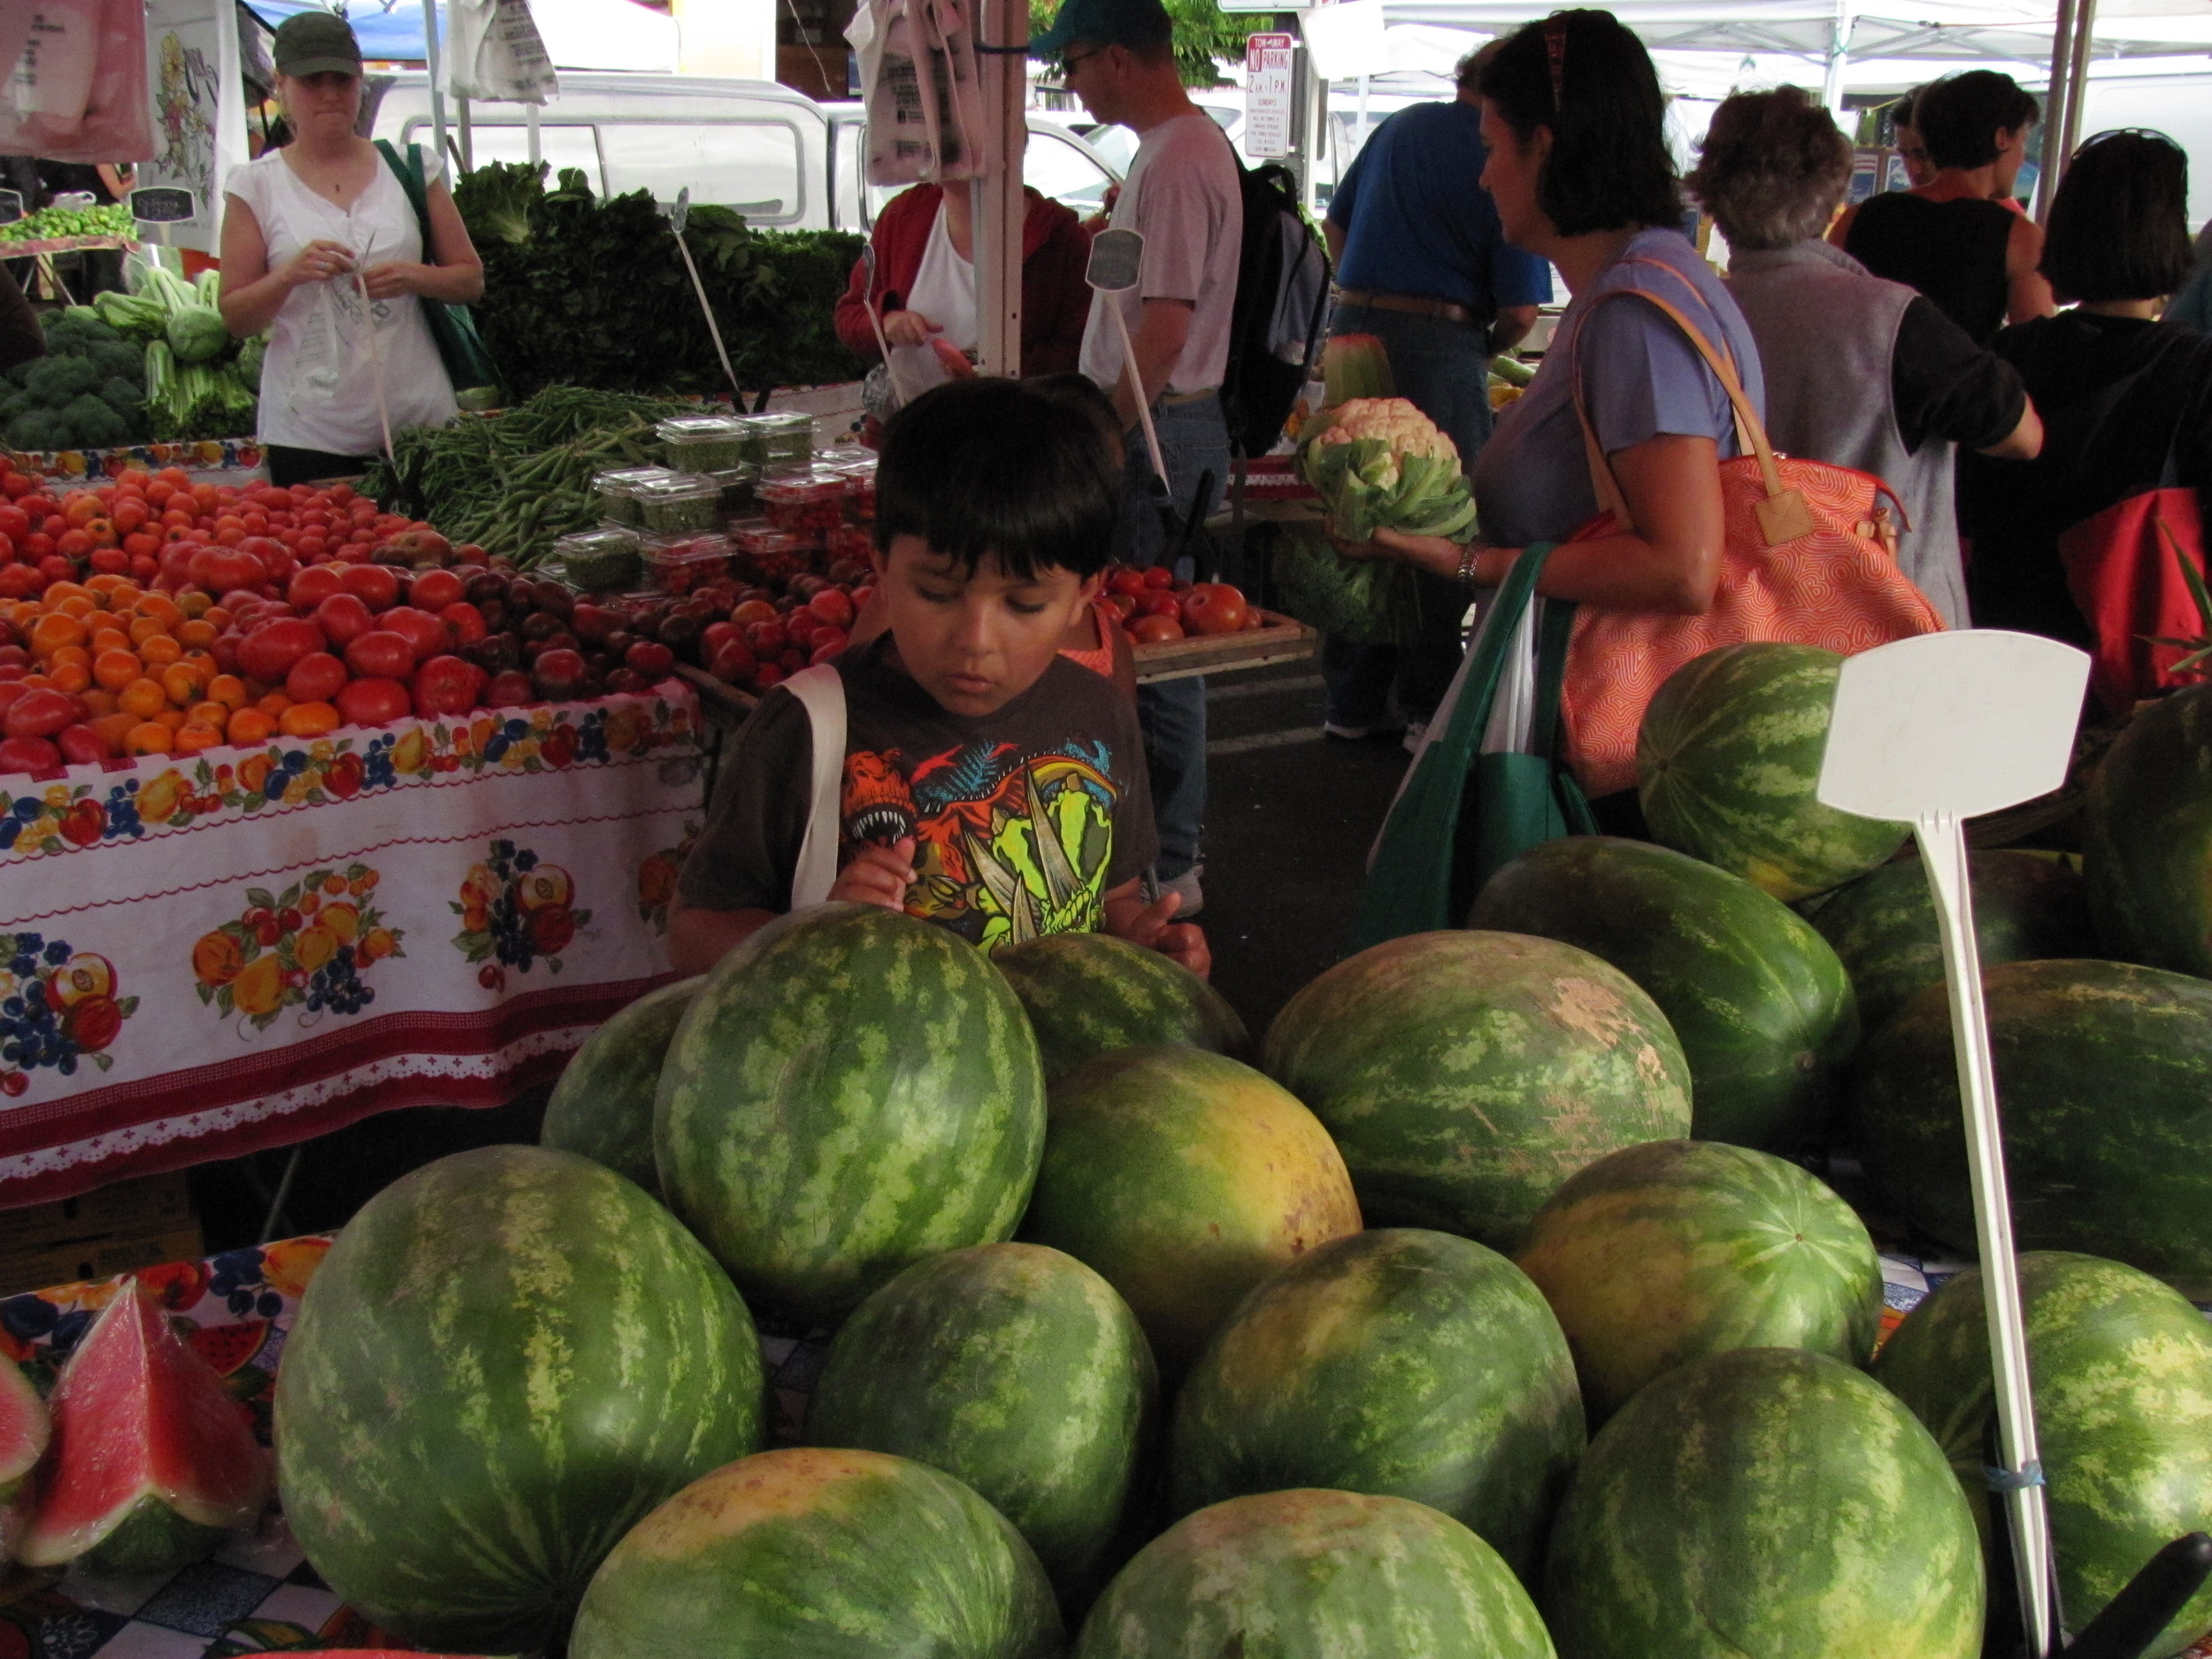 Local tomatoes and melons at Mountain View Farmers' Market